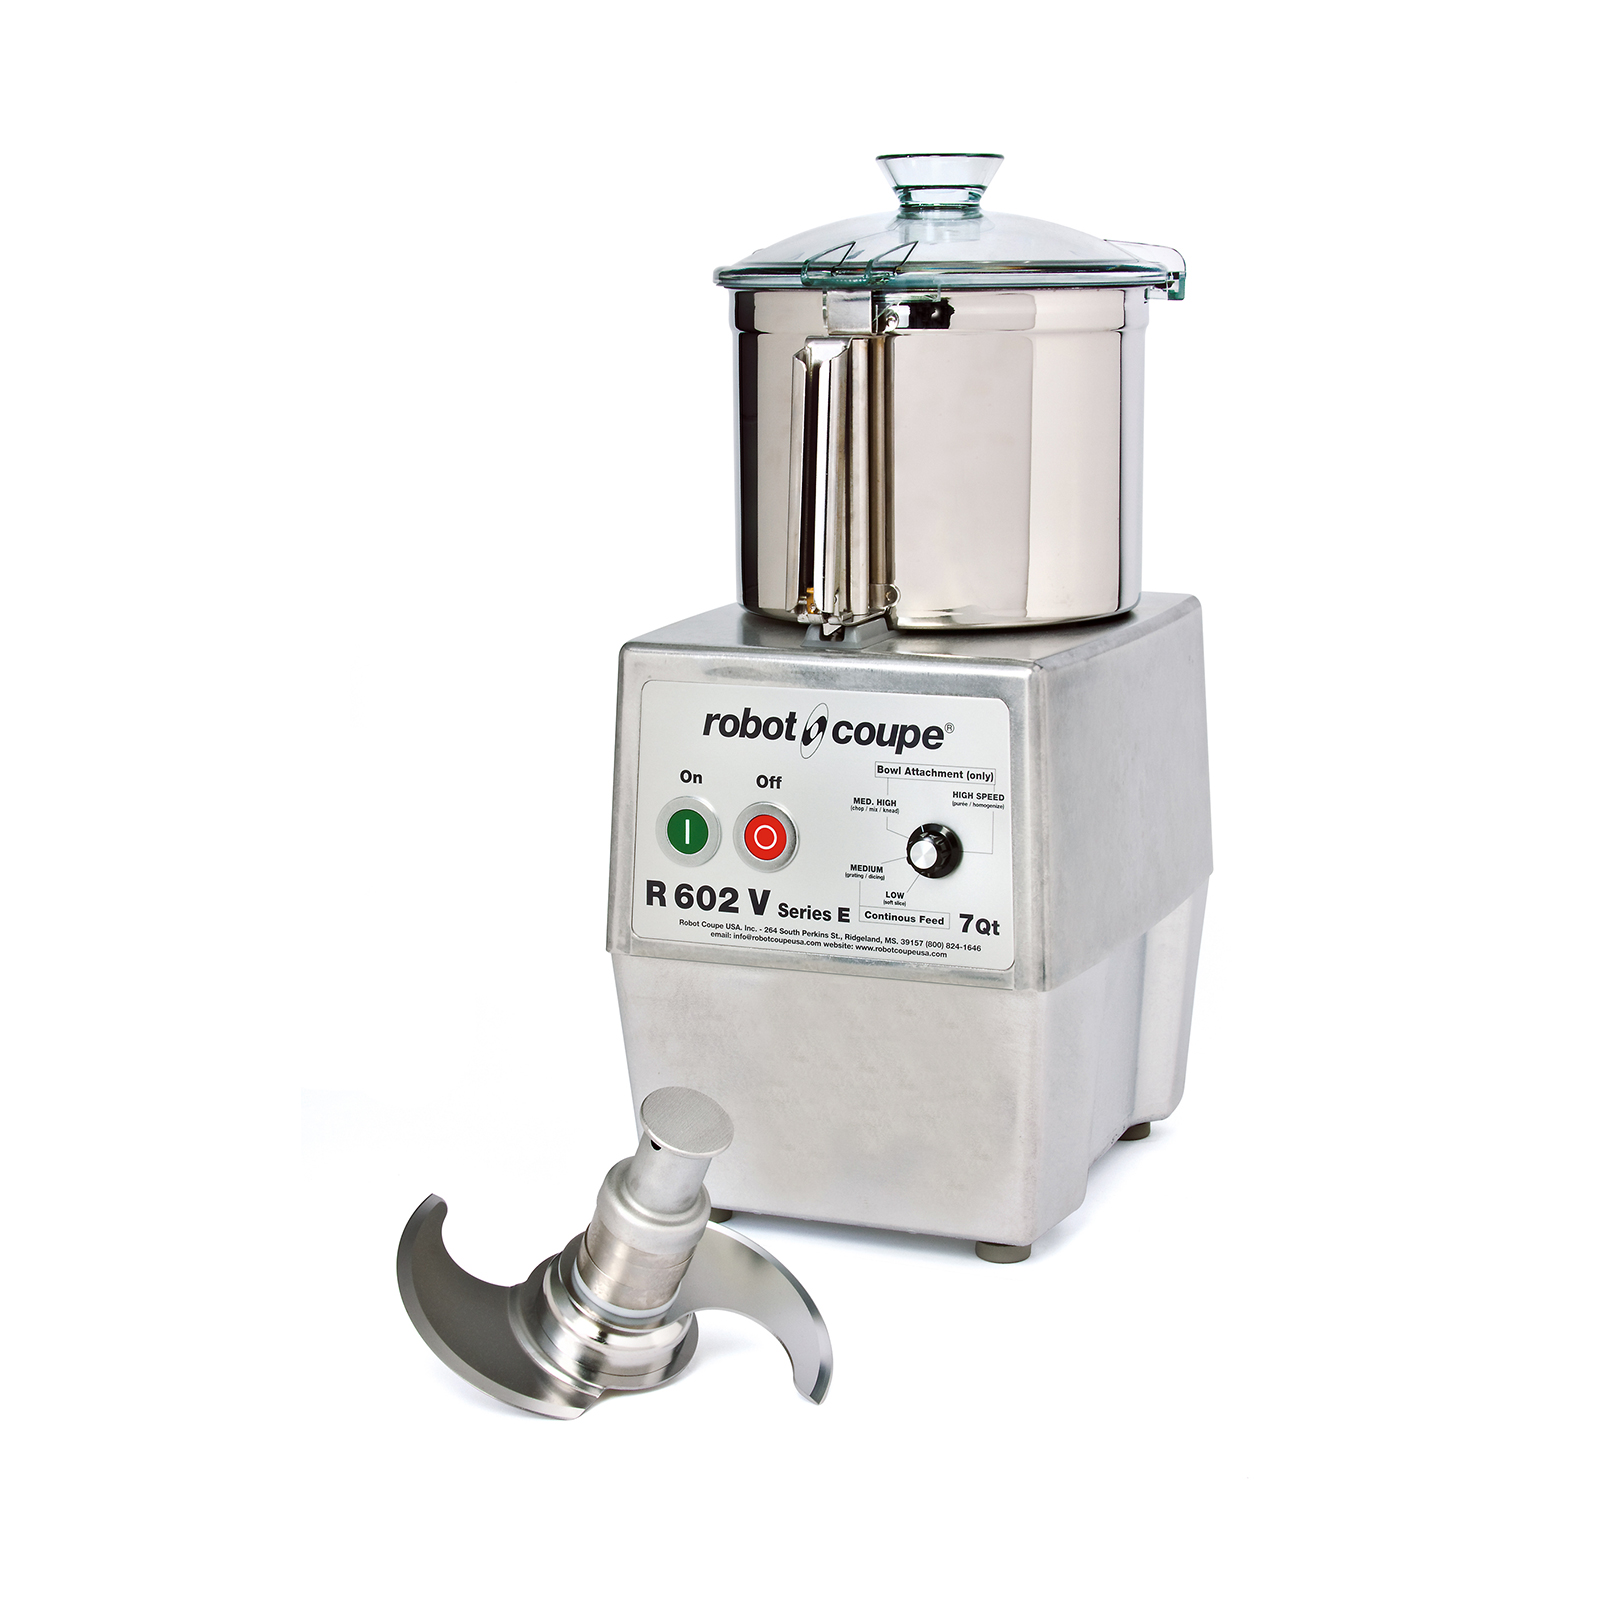 Robot Coupe R602 VV B food processor, benchtop / countertop